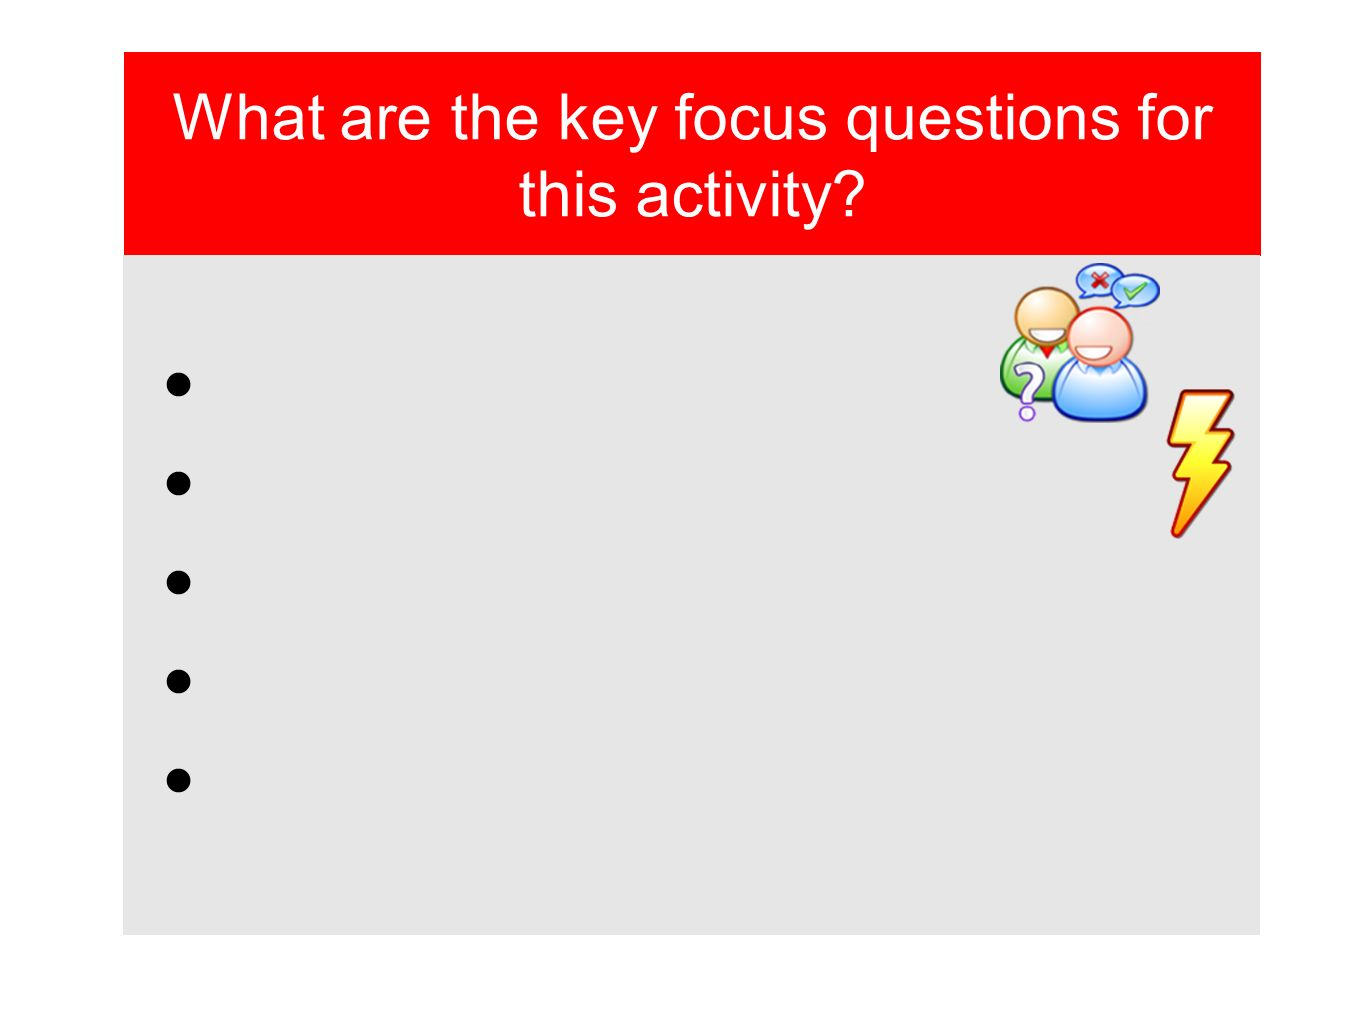 What are the key focus questions for this activity?